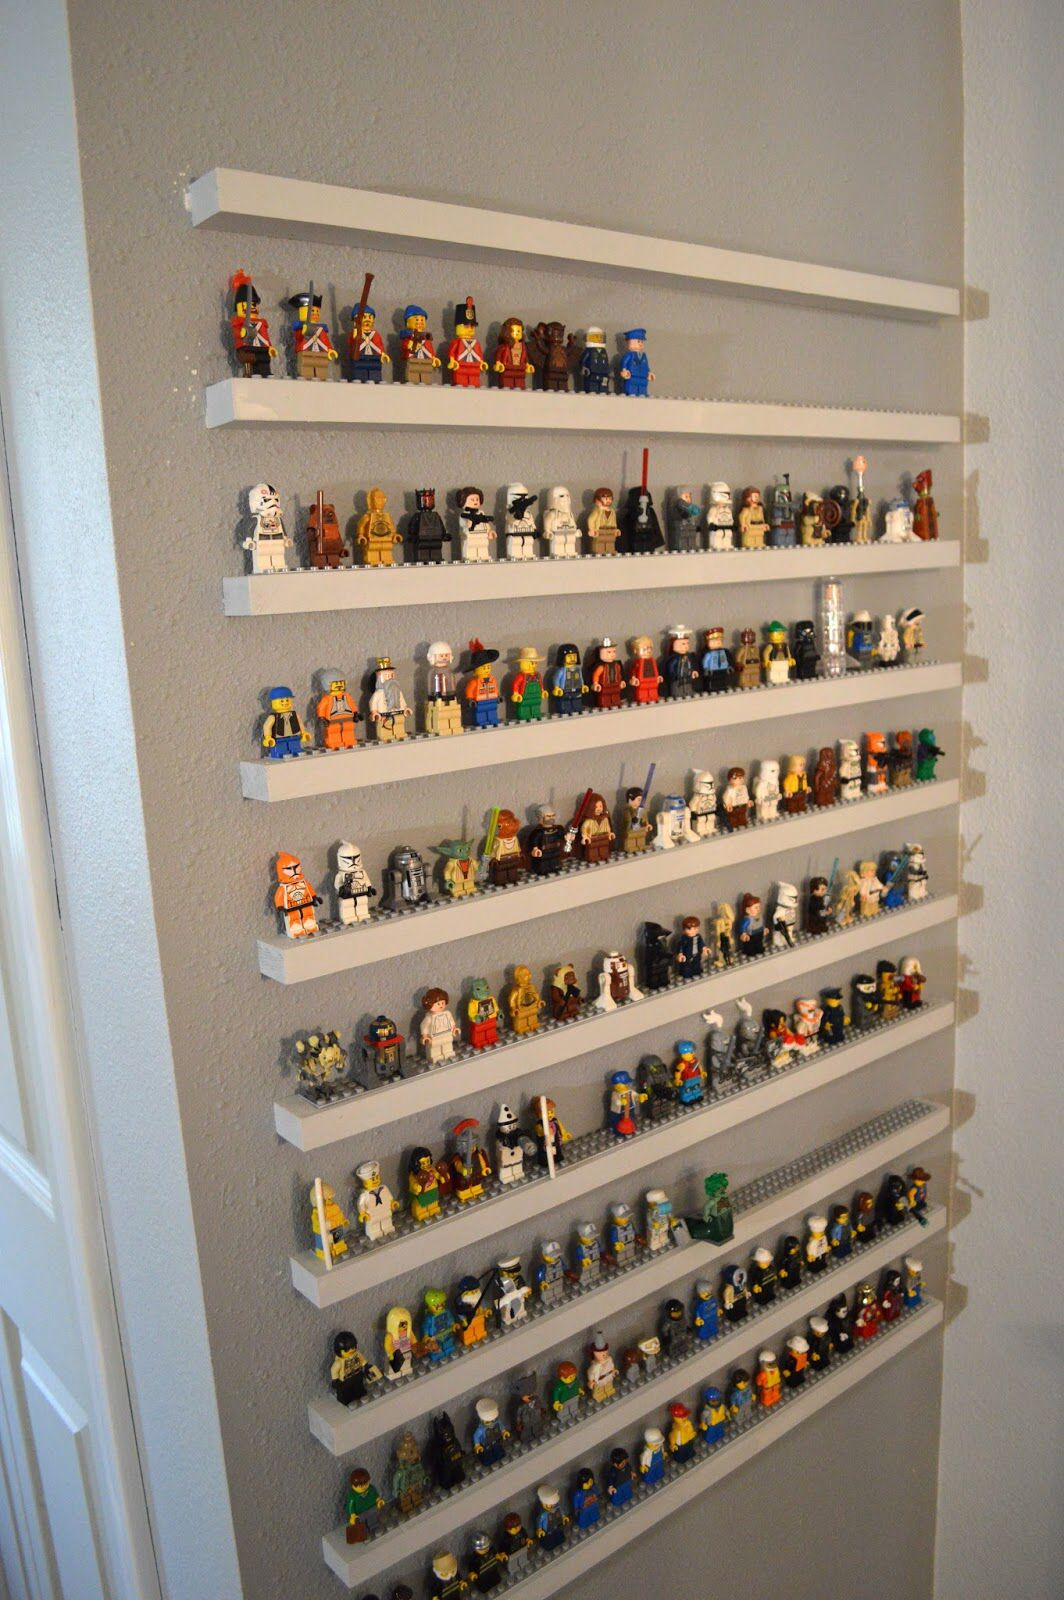 Bon However, It Would Probably Be Easier And Safer For The Wall To Create The  Shelving As One Piece Vs Individual Shelves As It Appears Here.